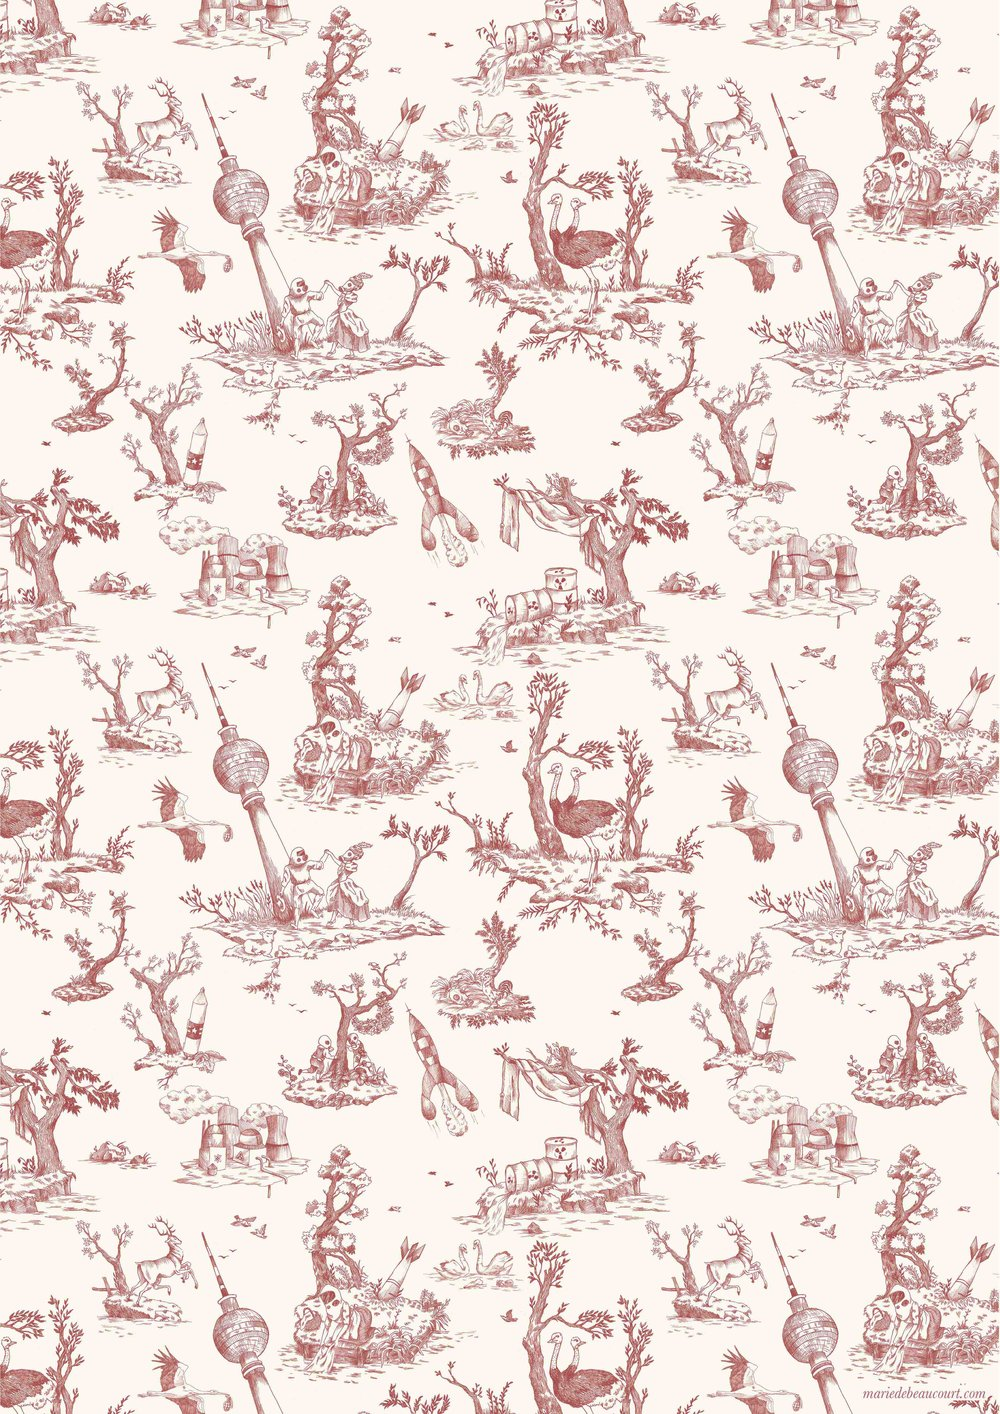 marie-de-beaucourt-illustration-surface-pattern-dystopian-toile-de-jouy-carmin-2017-web.jpg